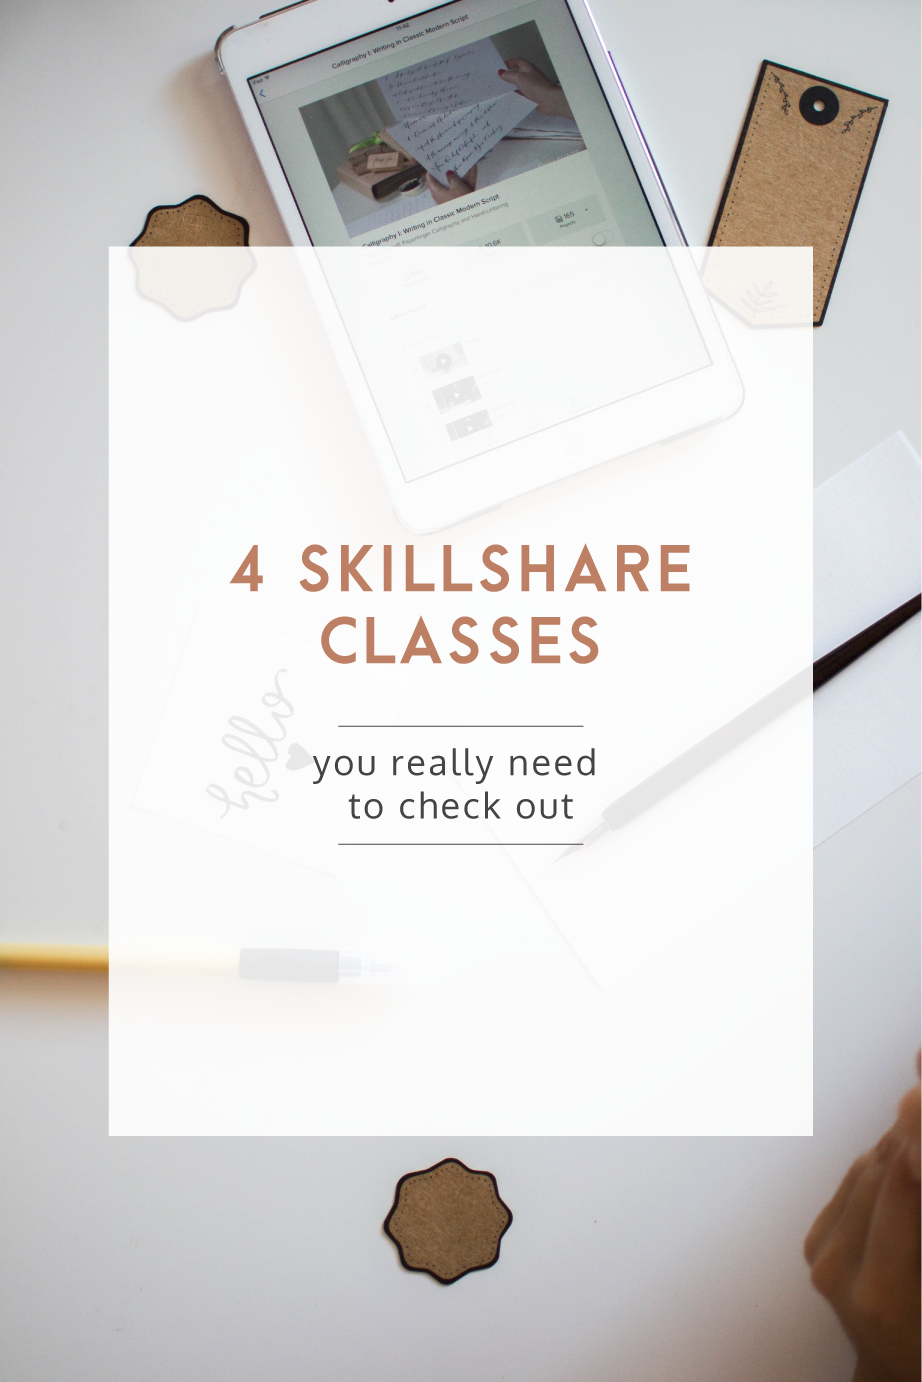 4 Skillshare Classes You Need To Check Out